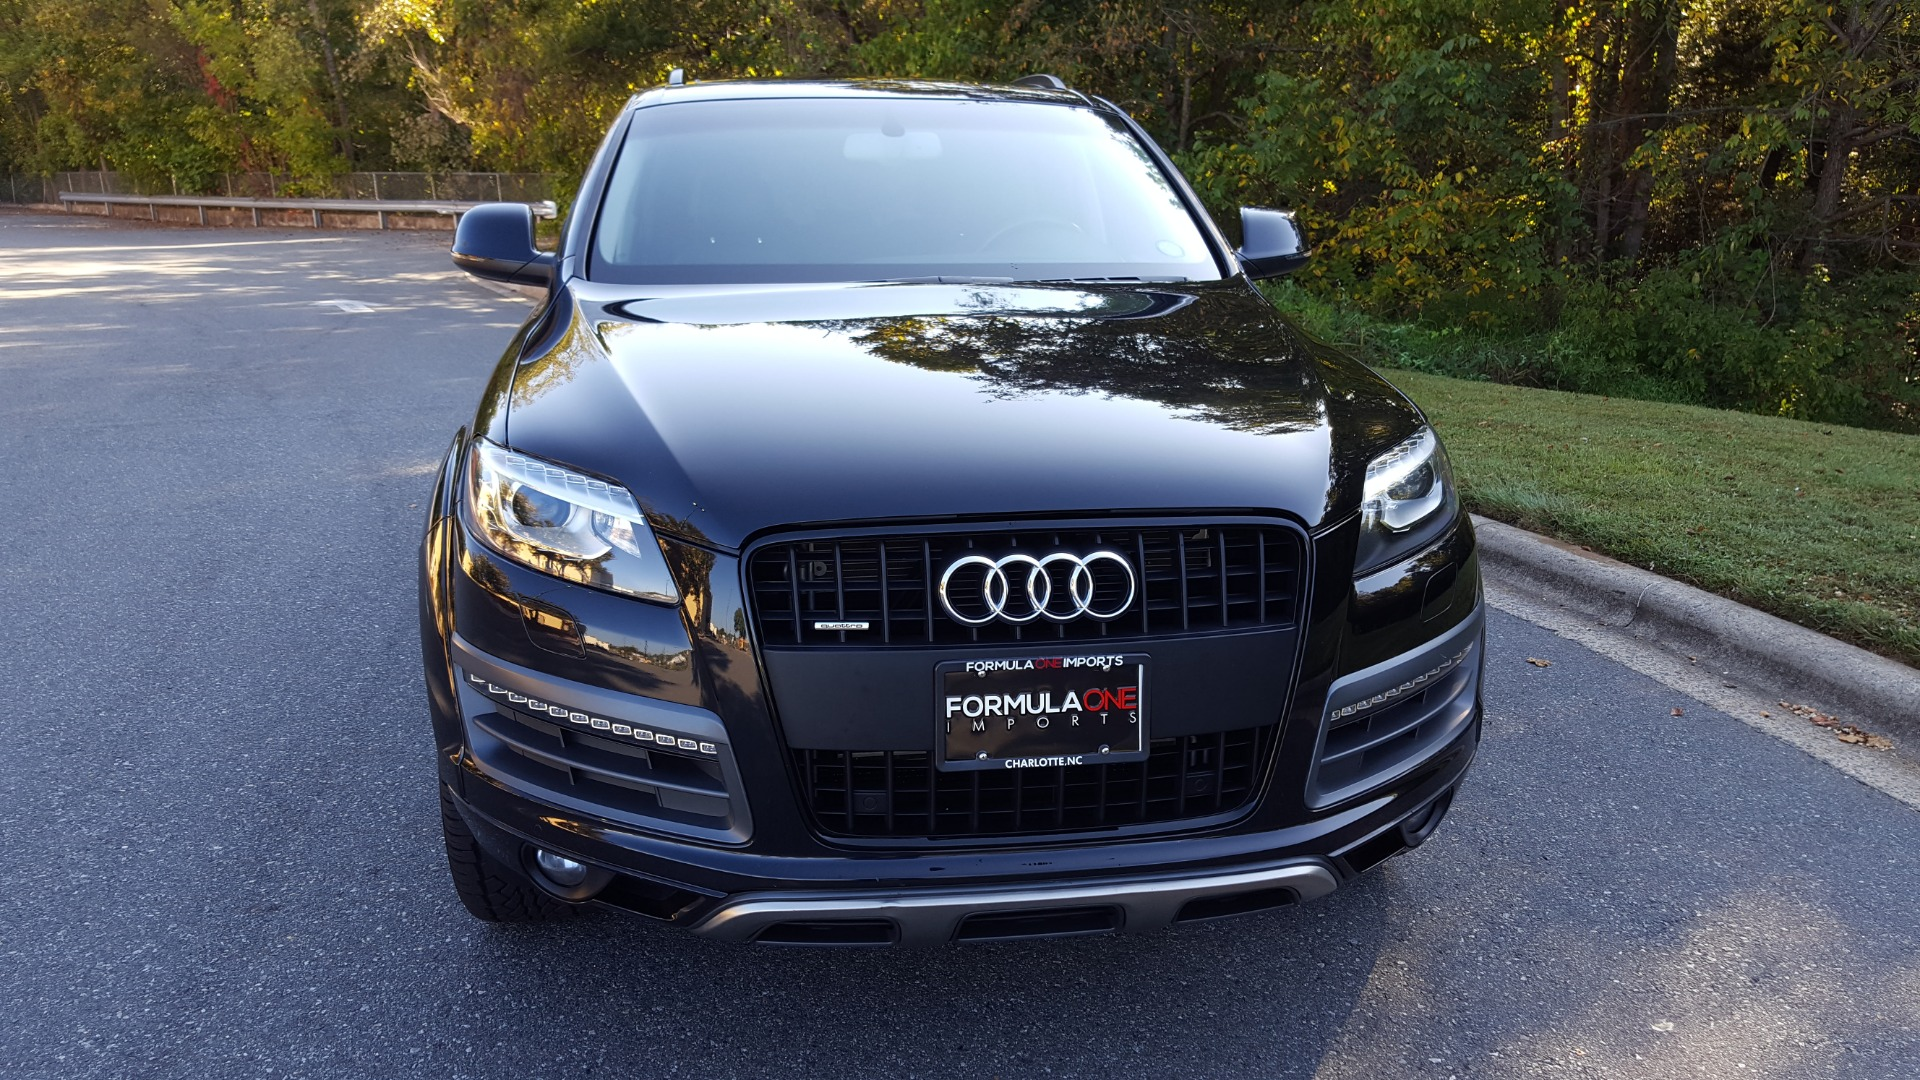 Used 2015 Audi Q7 3.0T PREMIUM PLUS TIPTRONIC / NAV / OFFROAD PLUS / WARM WEATHER / COLD WEAT for sale Sold at Formula Imports in Charlotte NC 28227 5